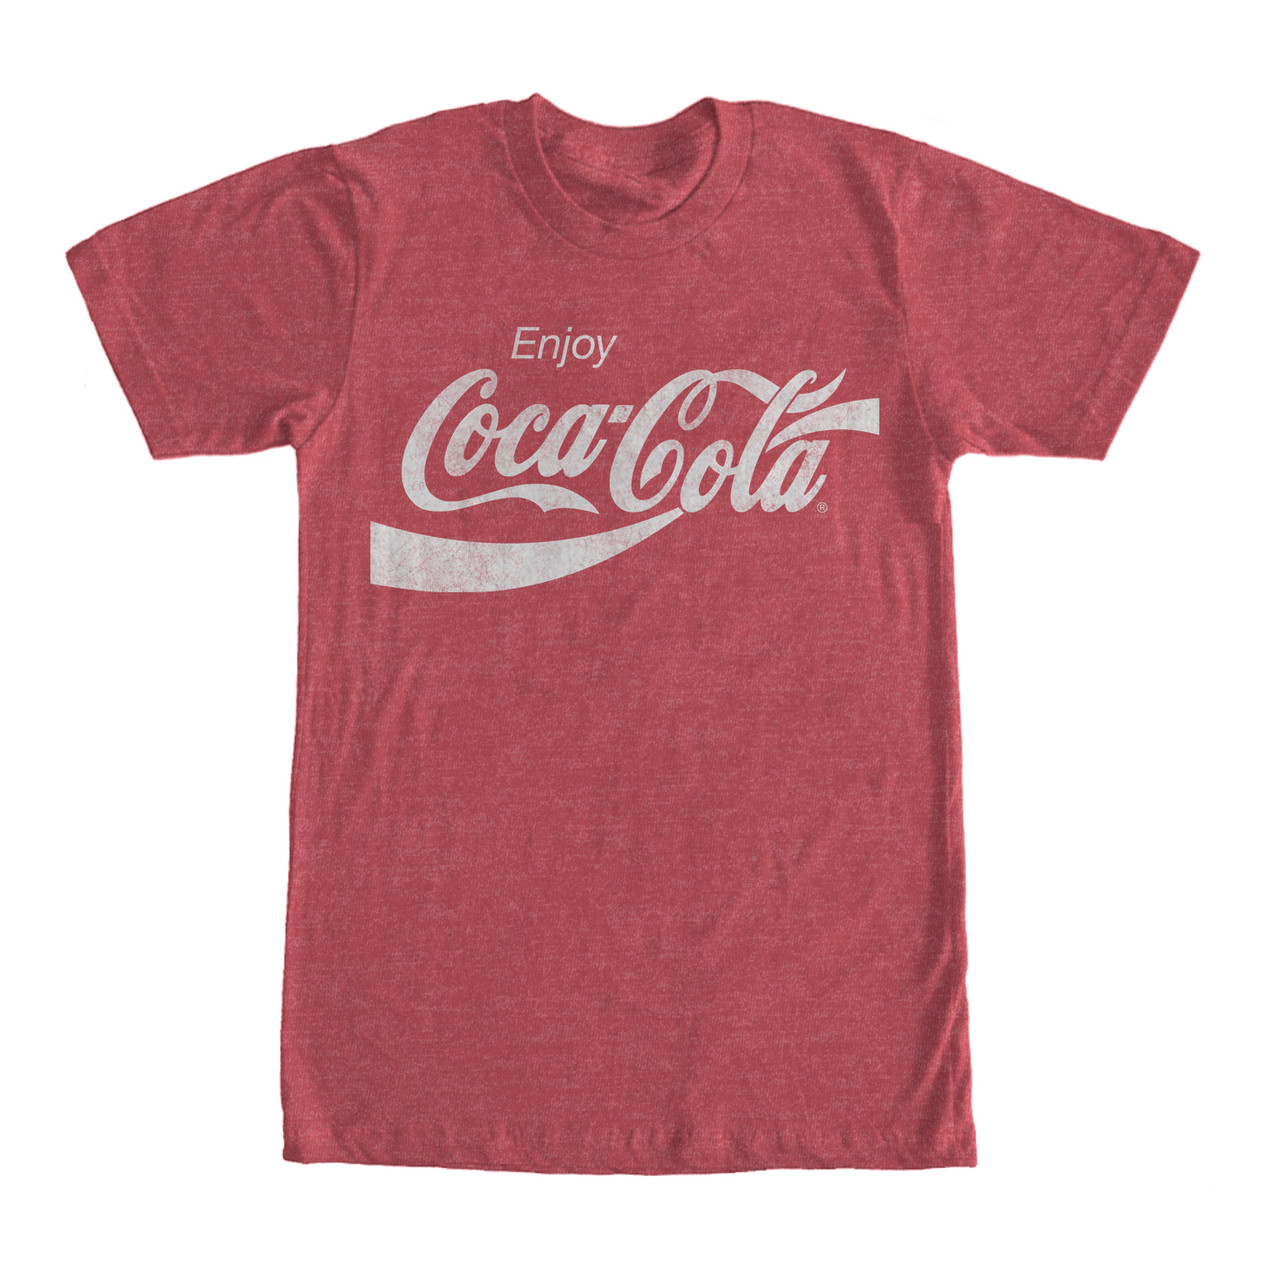 f9f75b34084 Coca-Cola Eighties Coke T-Shirt. Loading zoom. Hover over image to zoom